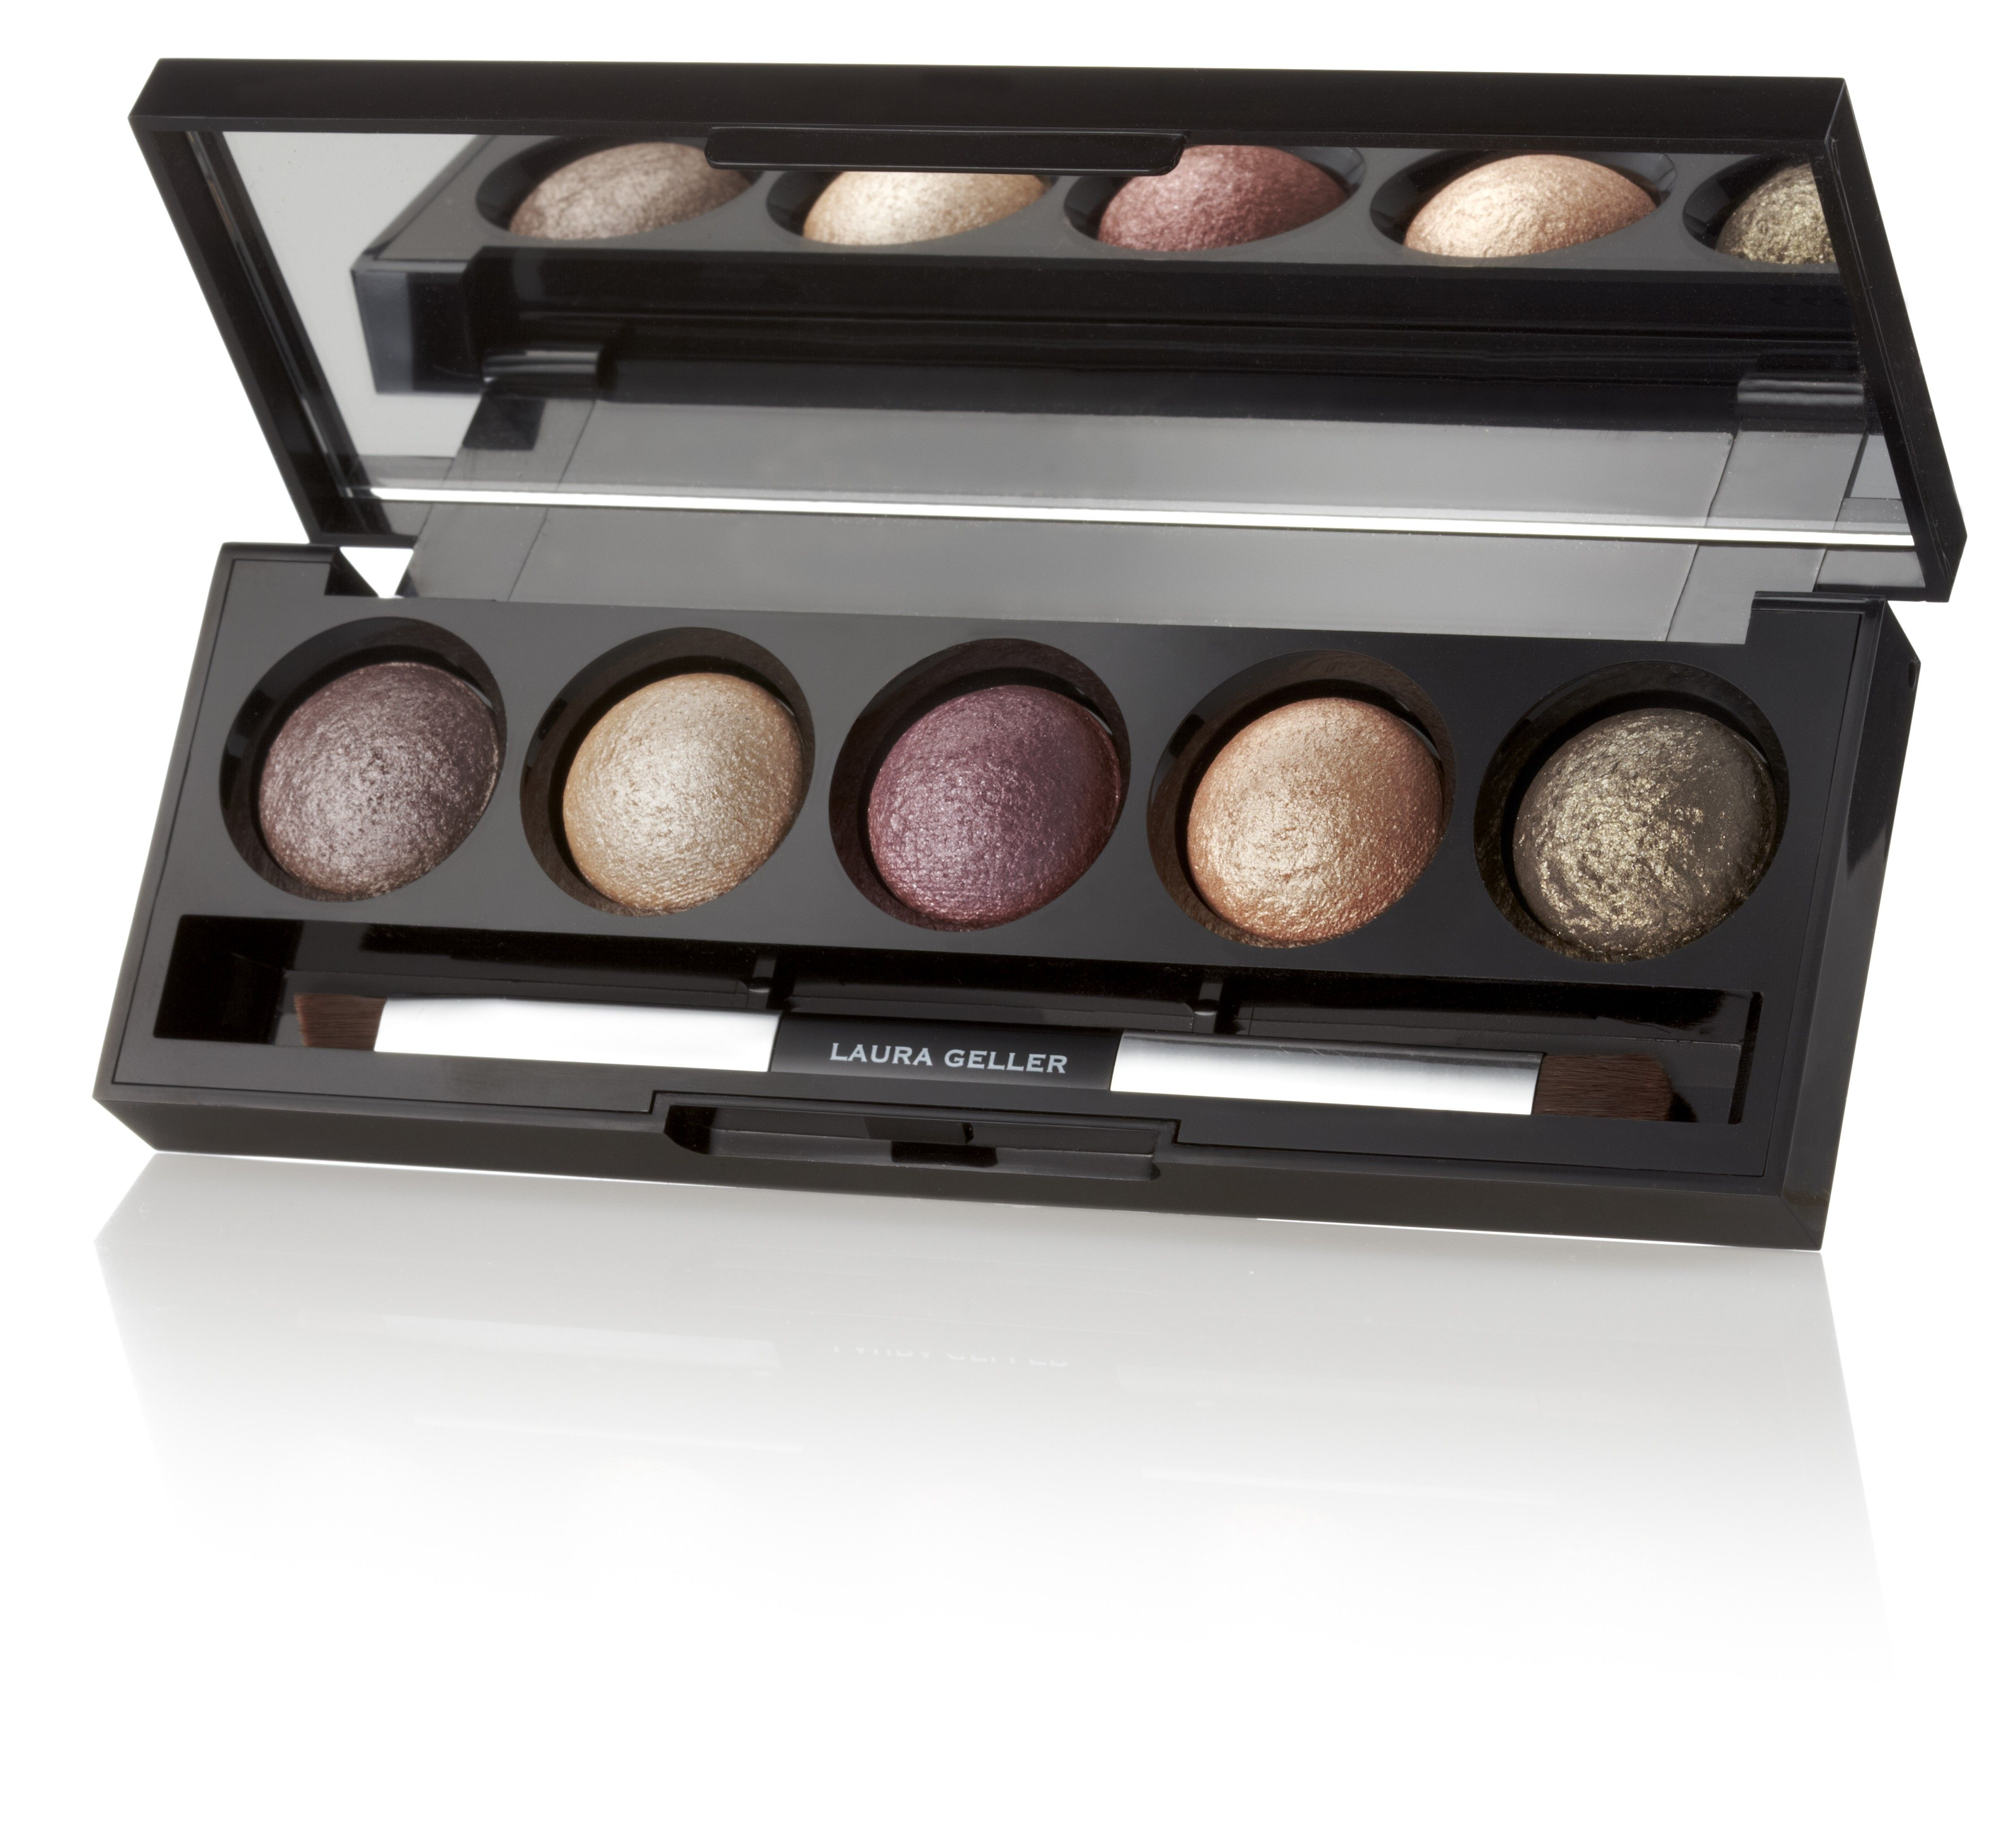 The Wearables Baked Eyeshadow Palette from LAURA GELLER -- Laura Geller Beauty introduces The Wearables, a palette of 5 Baked eyeshadows in must-have neutral hues that are anything but boring!  From soft golds and warm green to taupe and burgundy, these flattering shades bring out the best in all eye colors. Create a soft, natural look for day and build the drama for evening—the combinations are endless! Apply them dry for an understated effect or wet for a deeper color payoff.